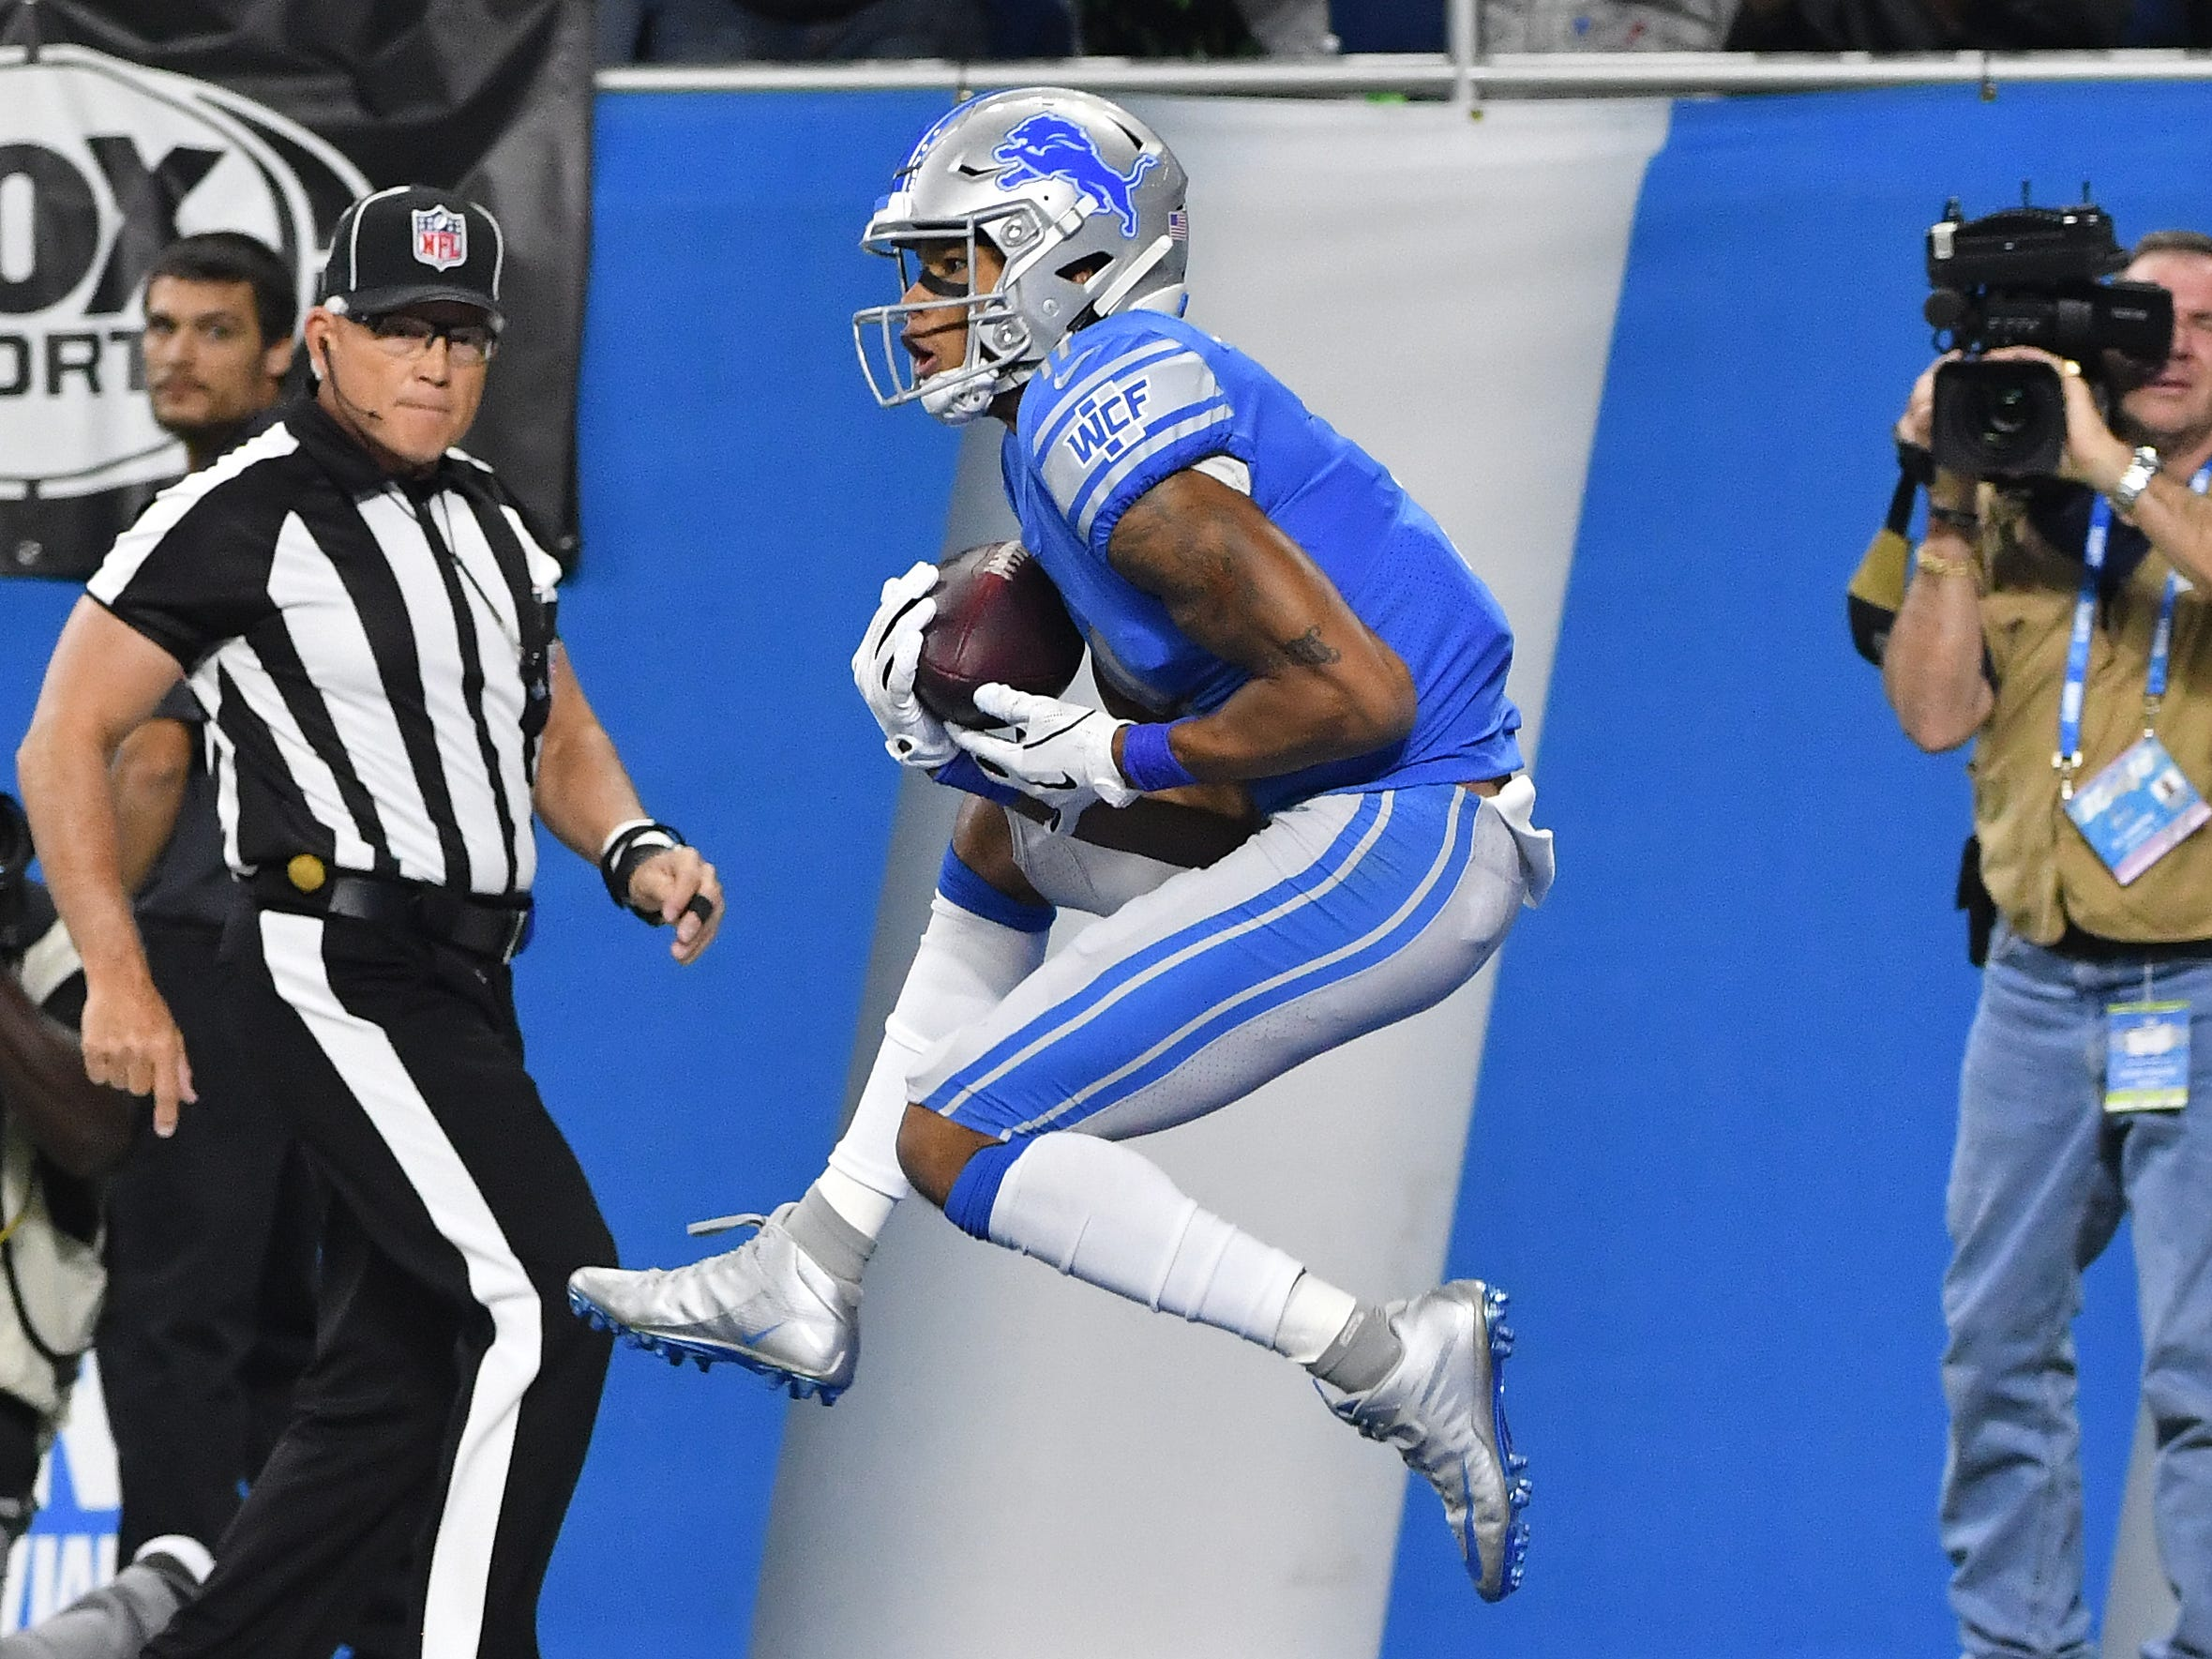 Lions' Marvin Jones Jr. pulls in a long touchdown reception from quarterback Matthew Stafford in the first quarter.